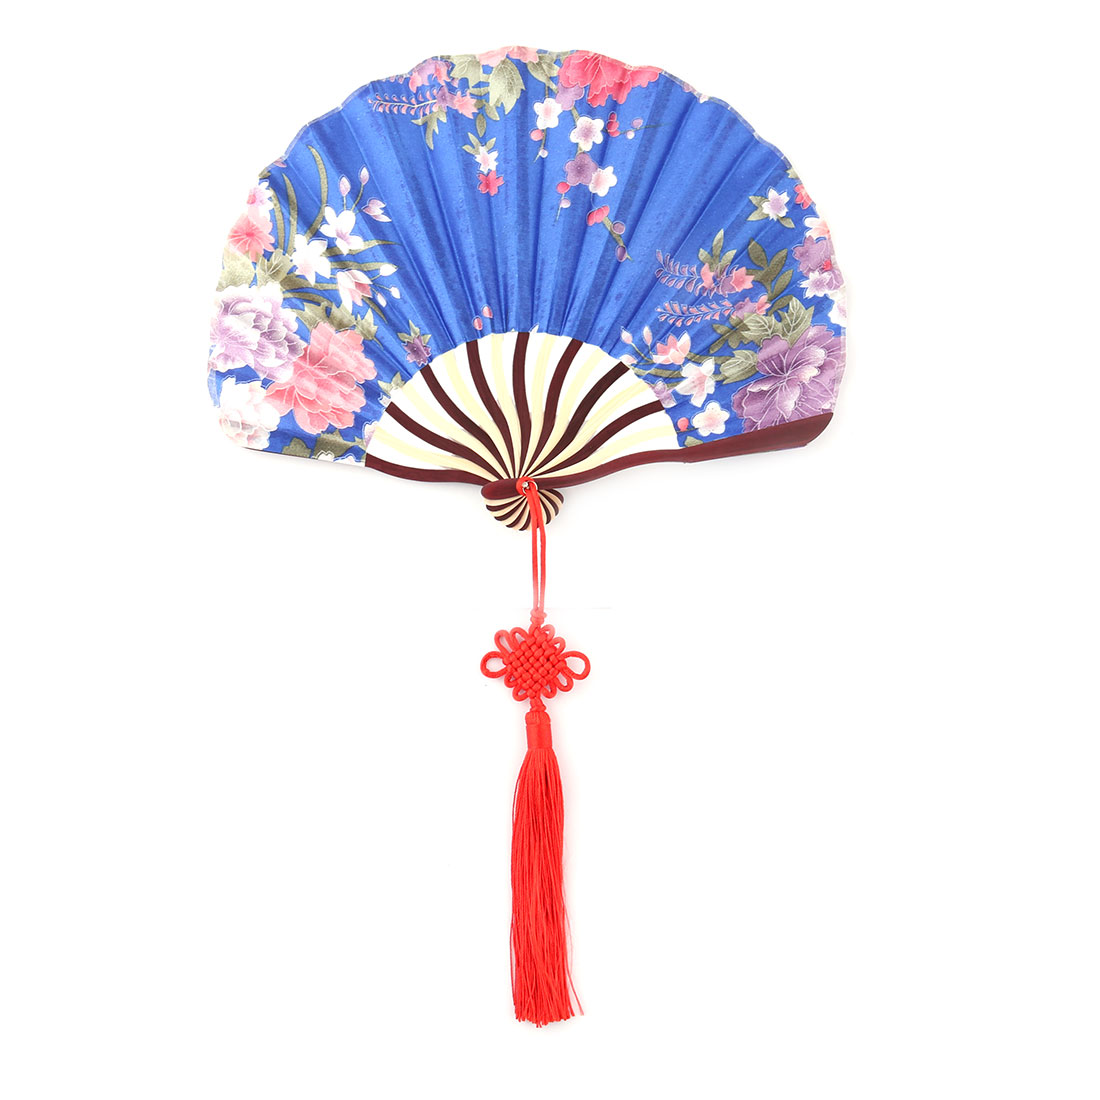 Gift Bamboo Frame Flower Print Chinese Knot Pendant Decor Hand Folding Fan Royal Blue